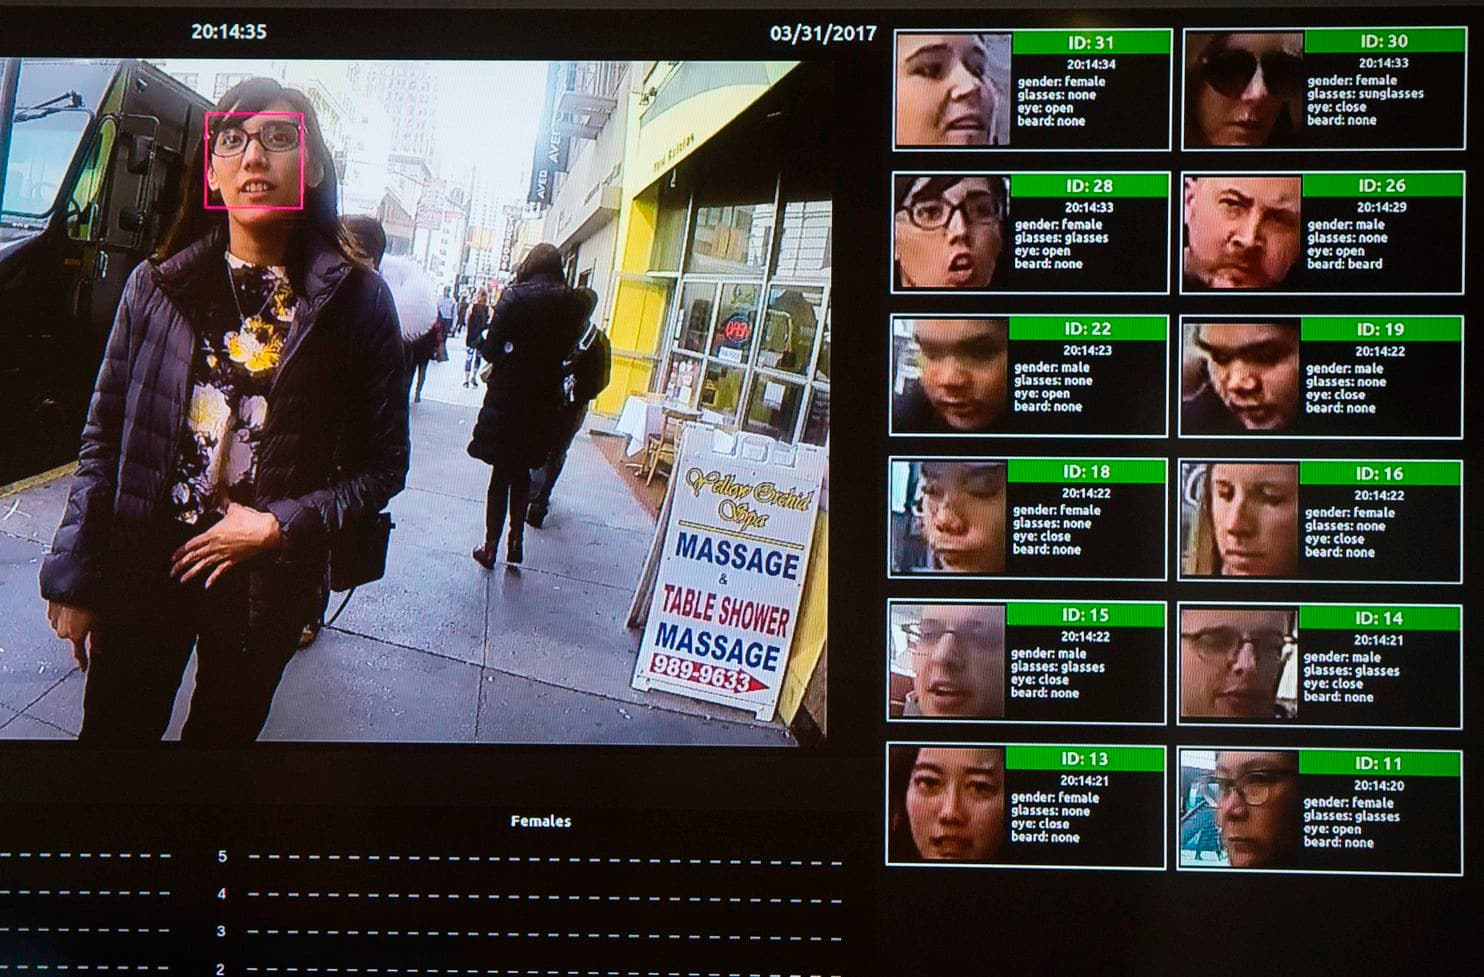 A facial-recognition system for law enforcement at a technology conference in Washington in 2017